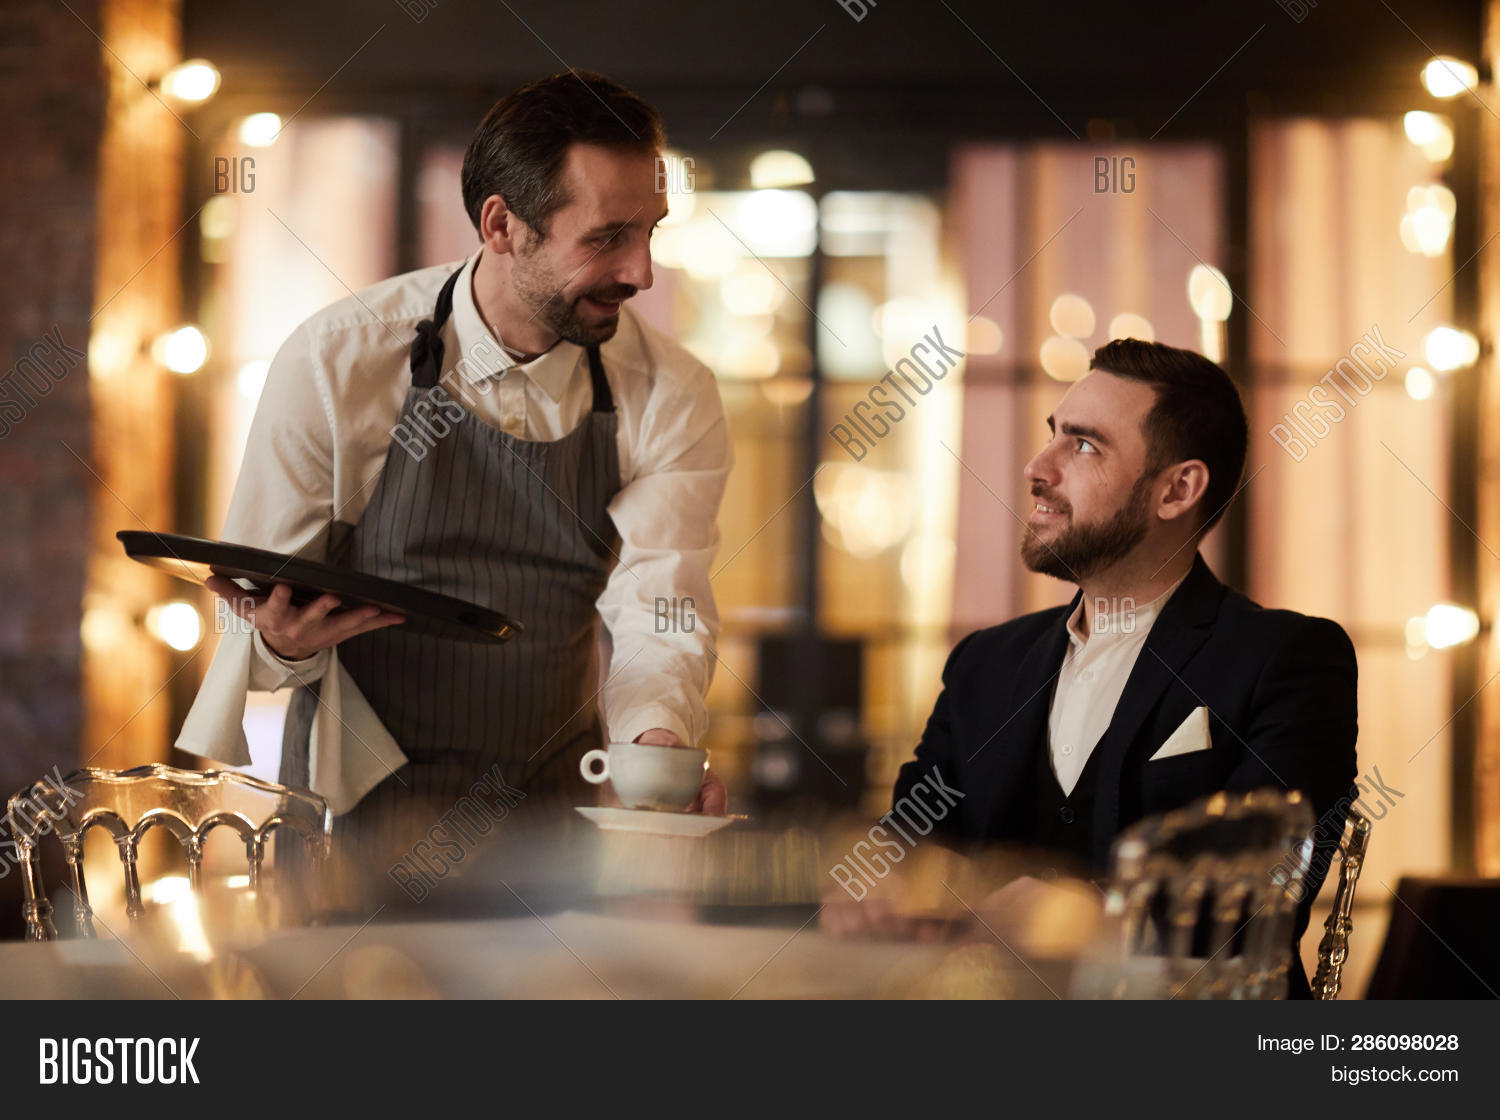 Portrait Mature Waiter Image Photo Free Trial Bigstock